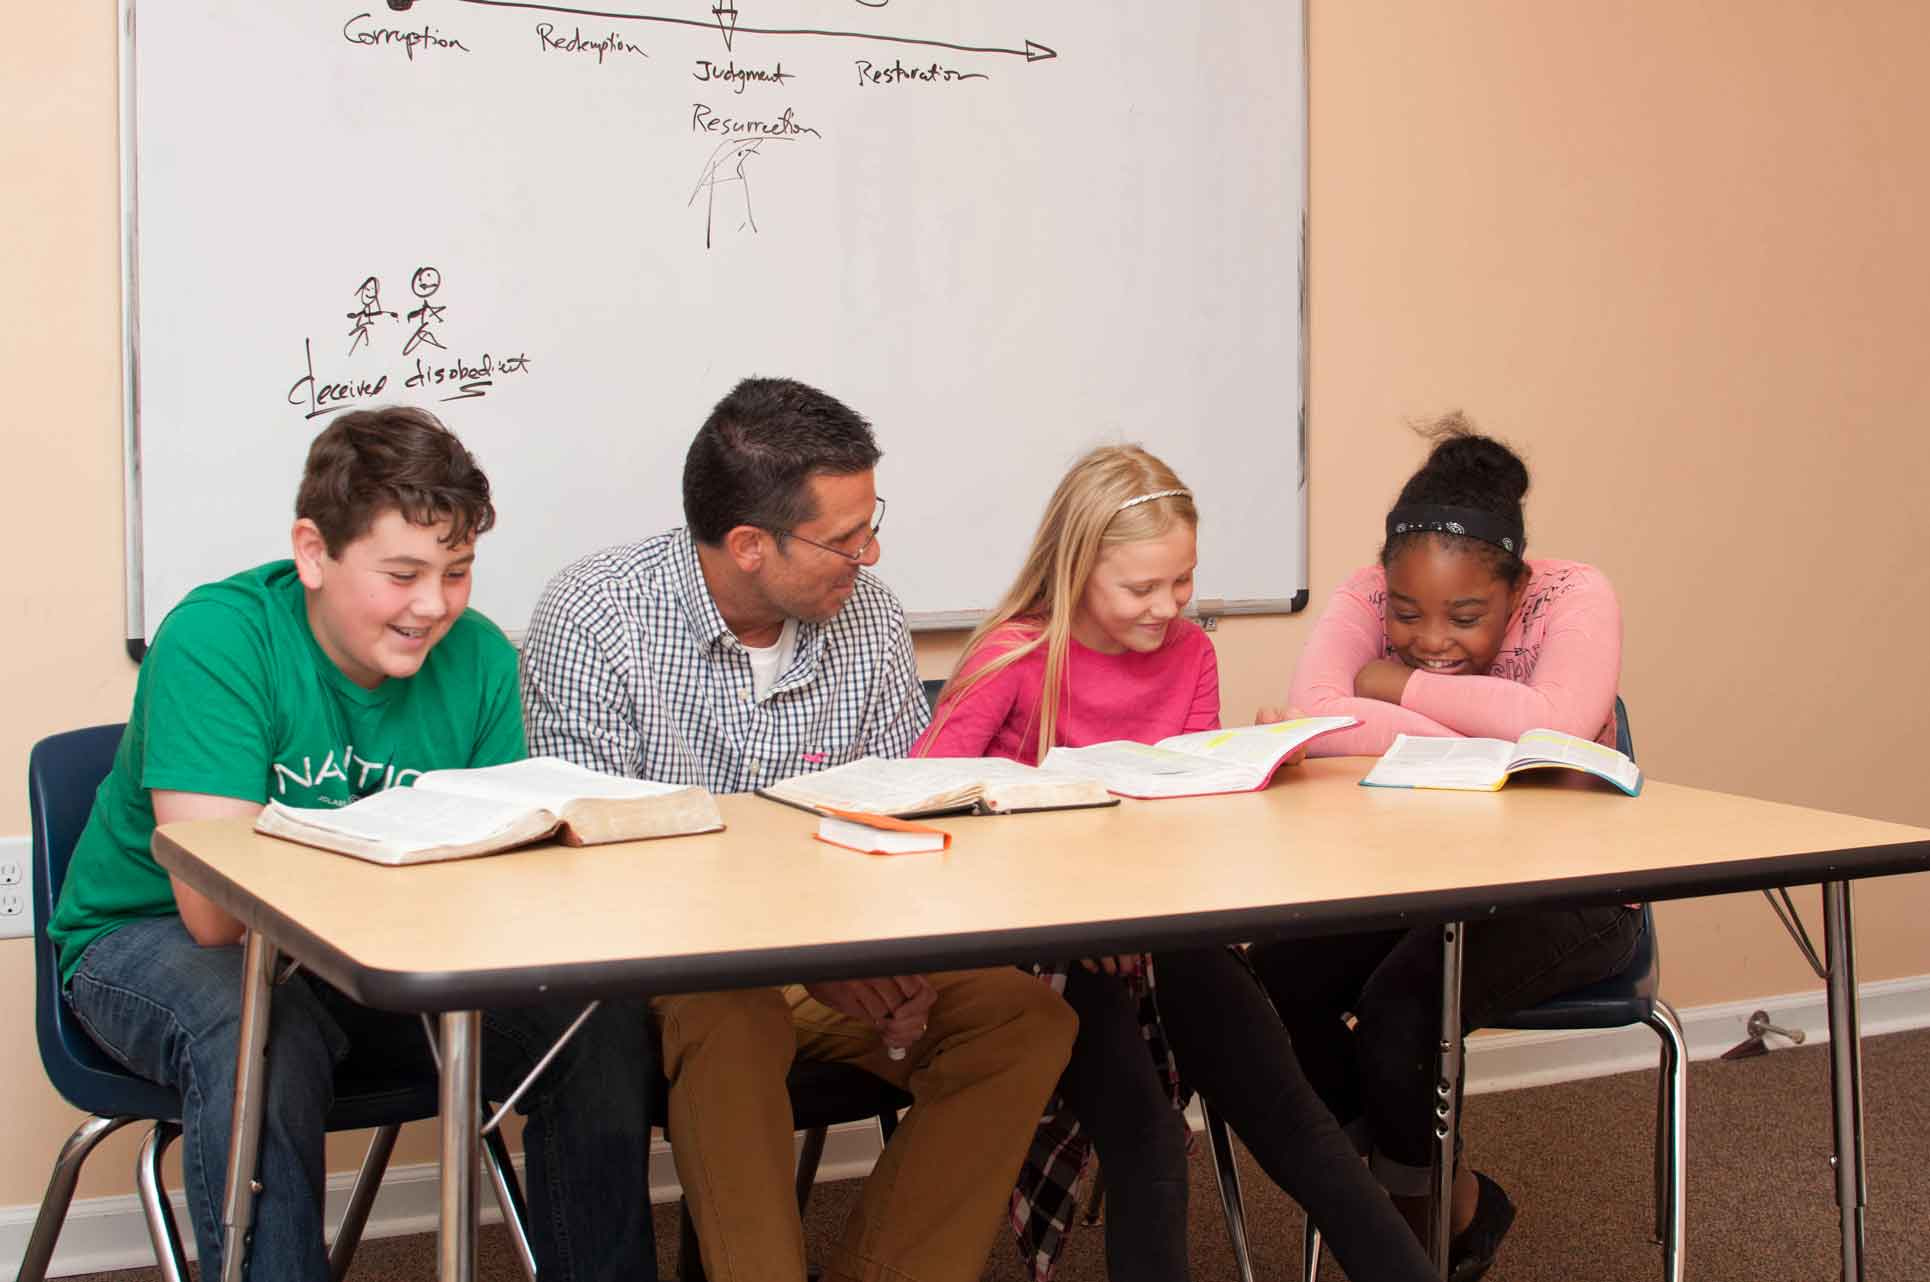 Christian-High-School-Students-Smiling-with-Teacher